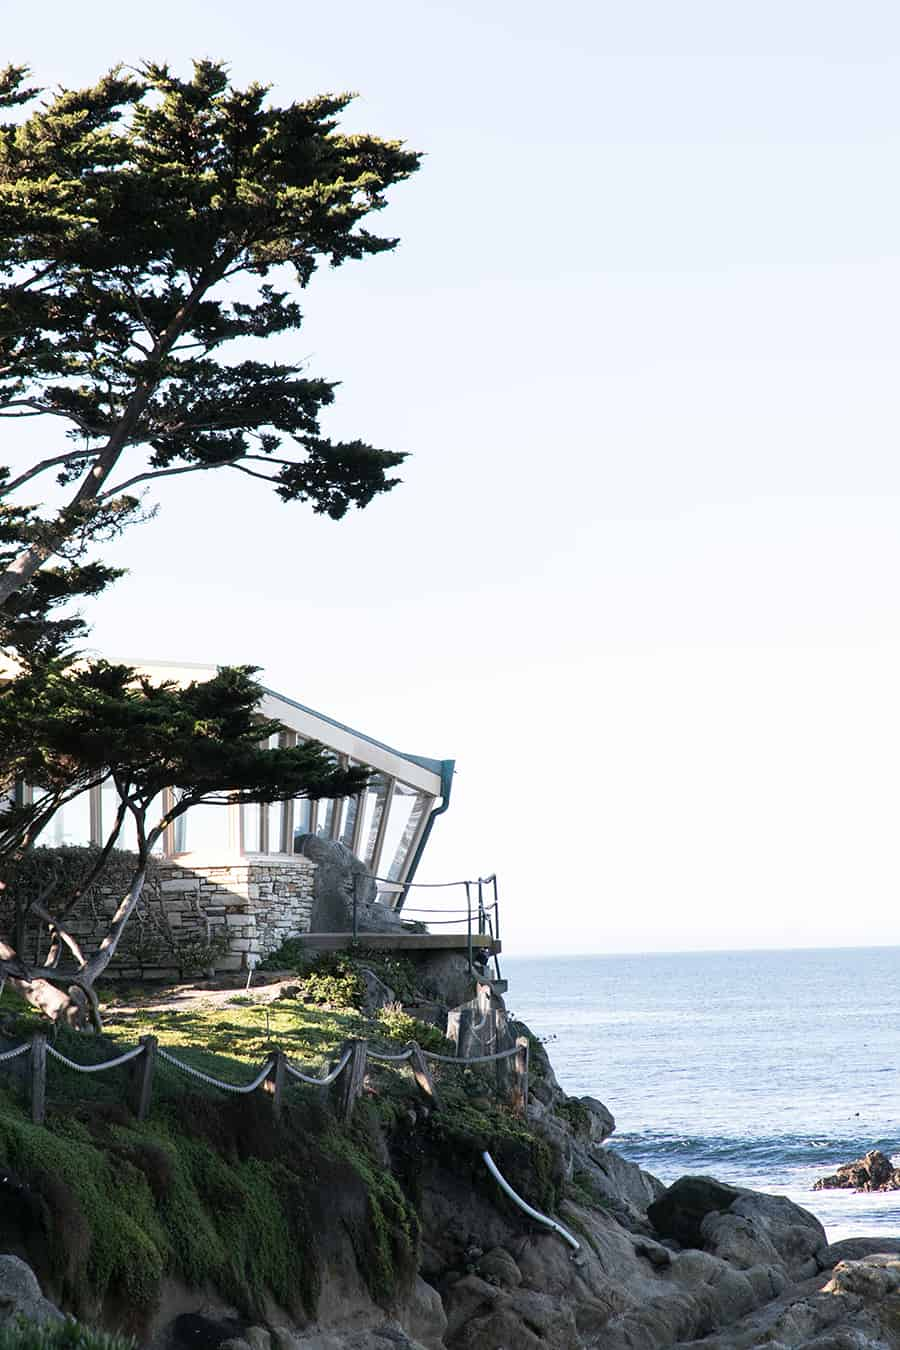 Architecture on a cliff in Carmel by The Sea.